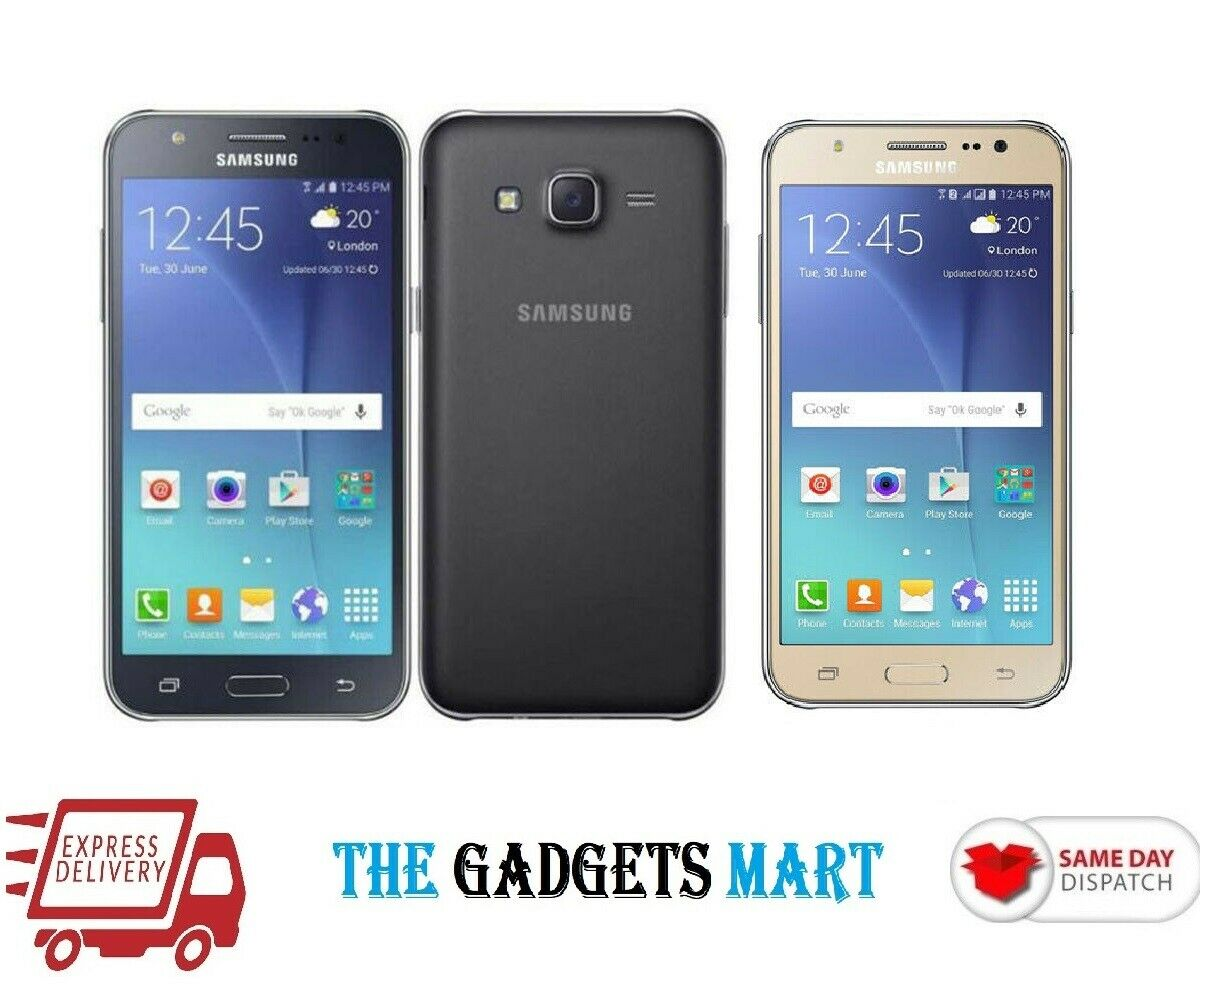 Android Phone -  SAMSUNG Galaxy J5 J500 Black Gold White 8GB Android Smart Phone Unlocked